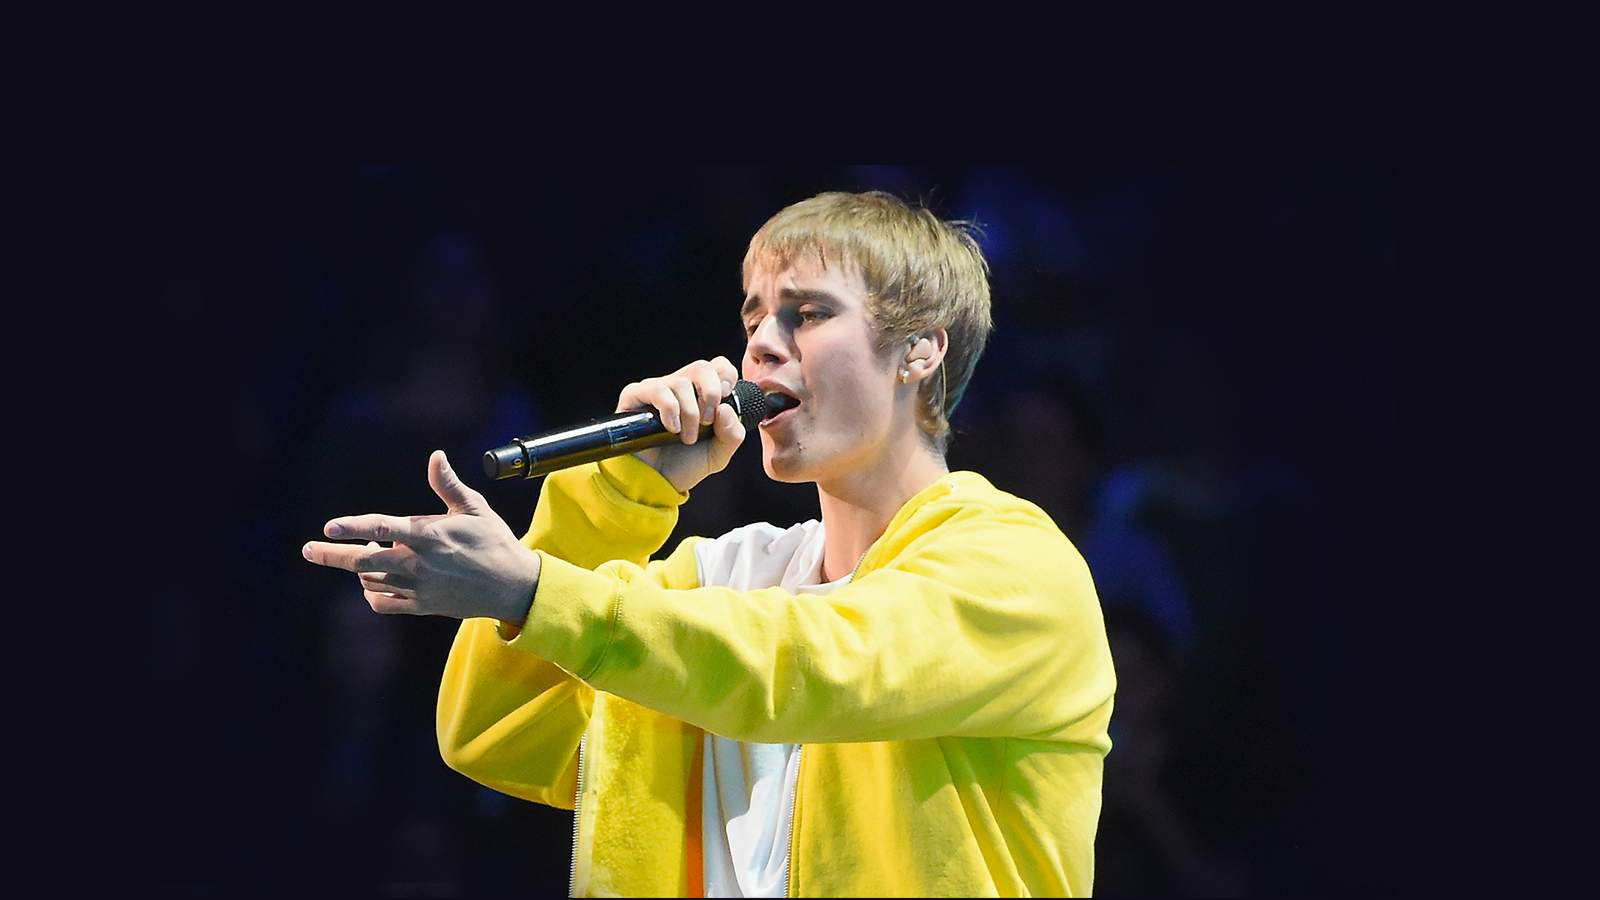 Justin Bieber (Rescheduled from 6/5/2020)